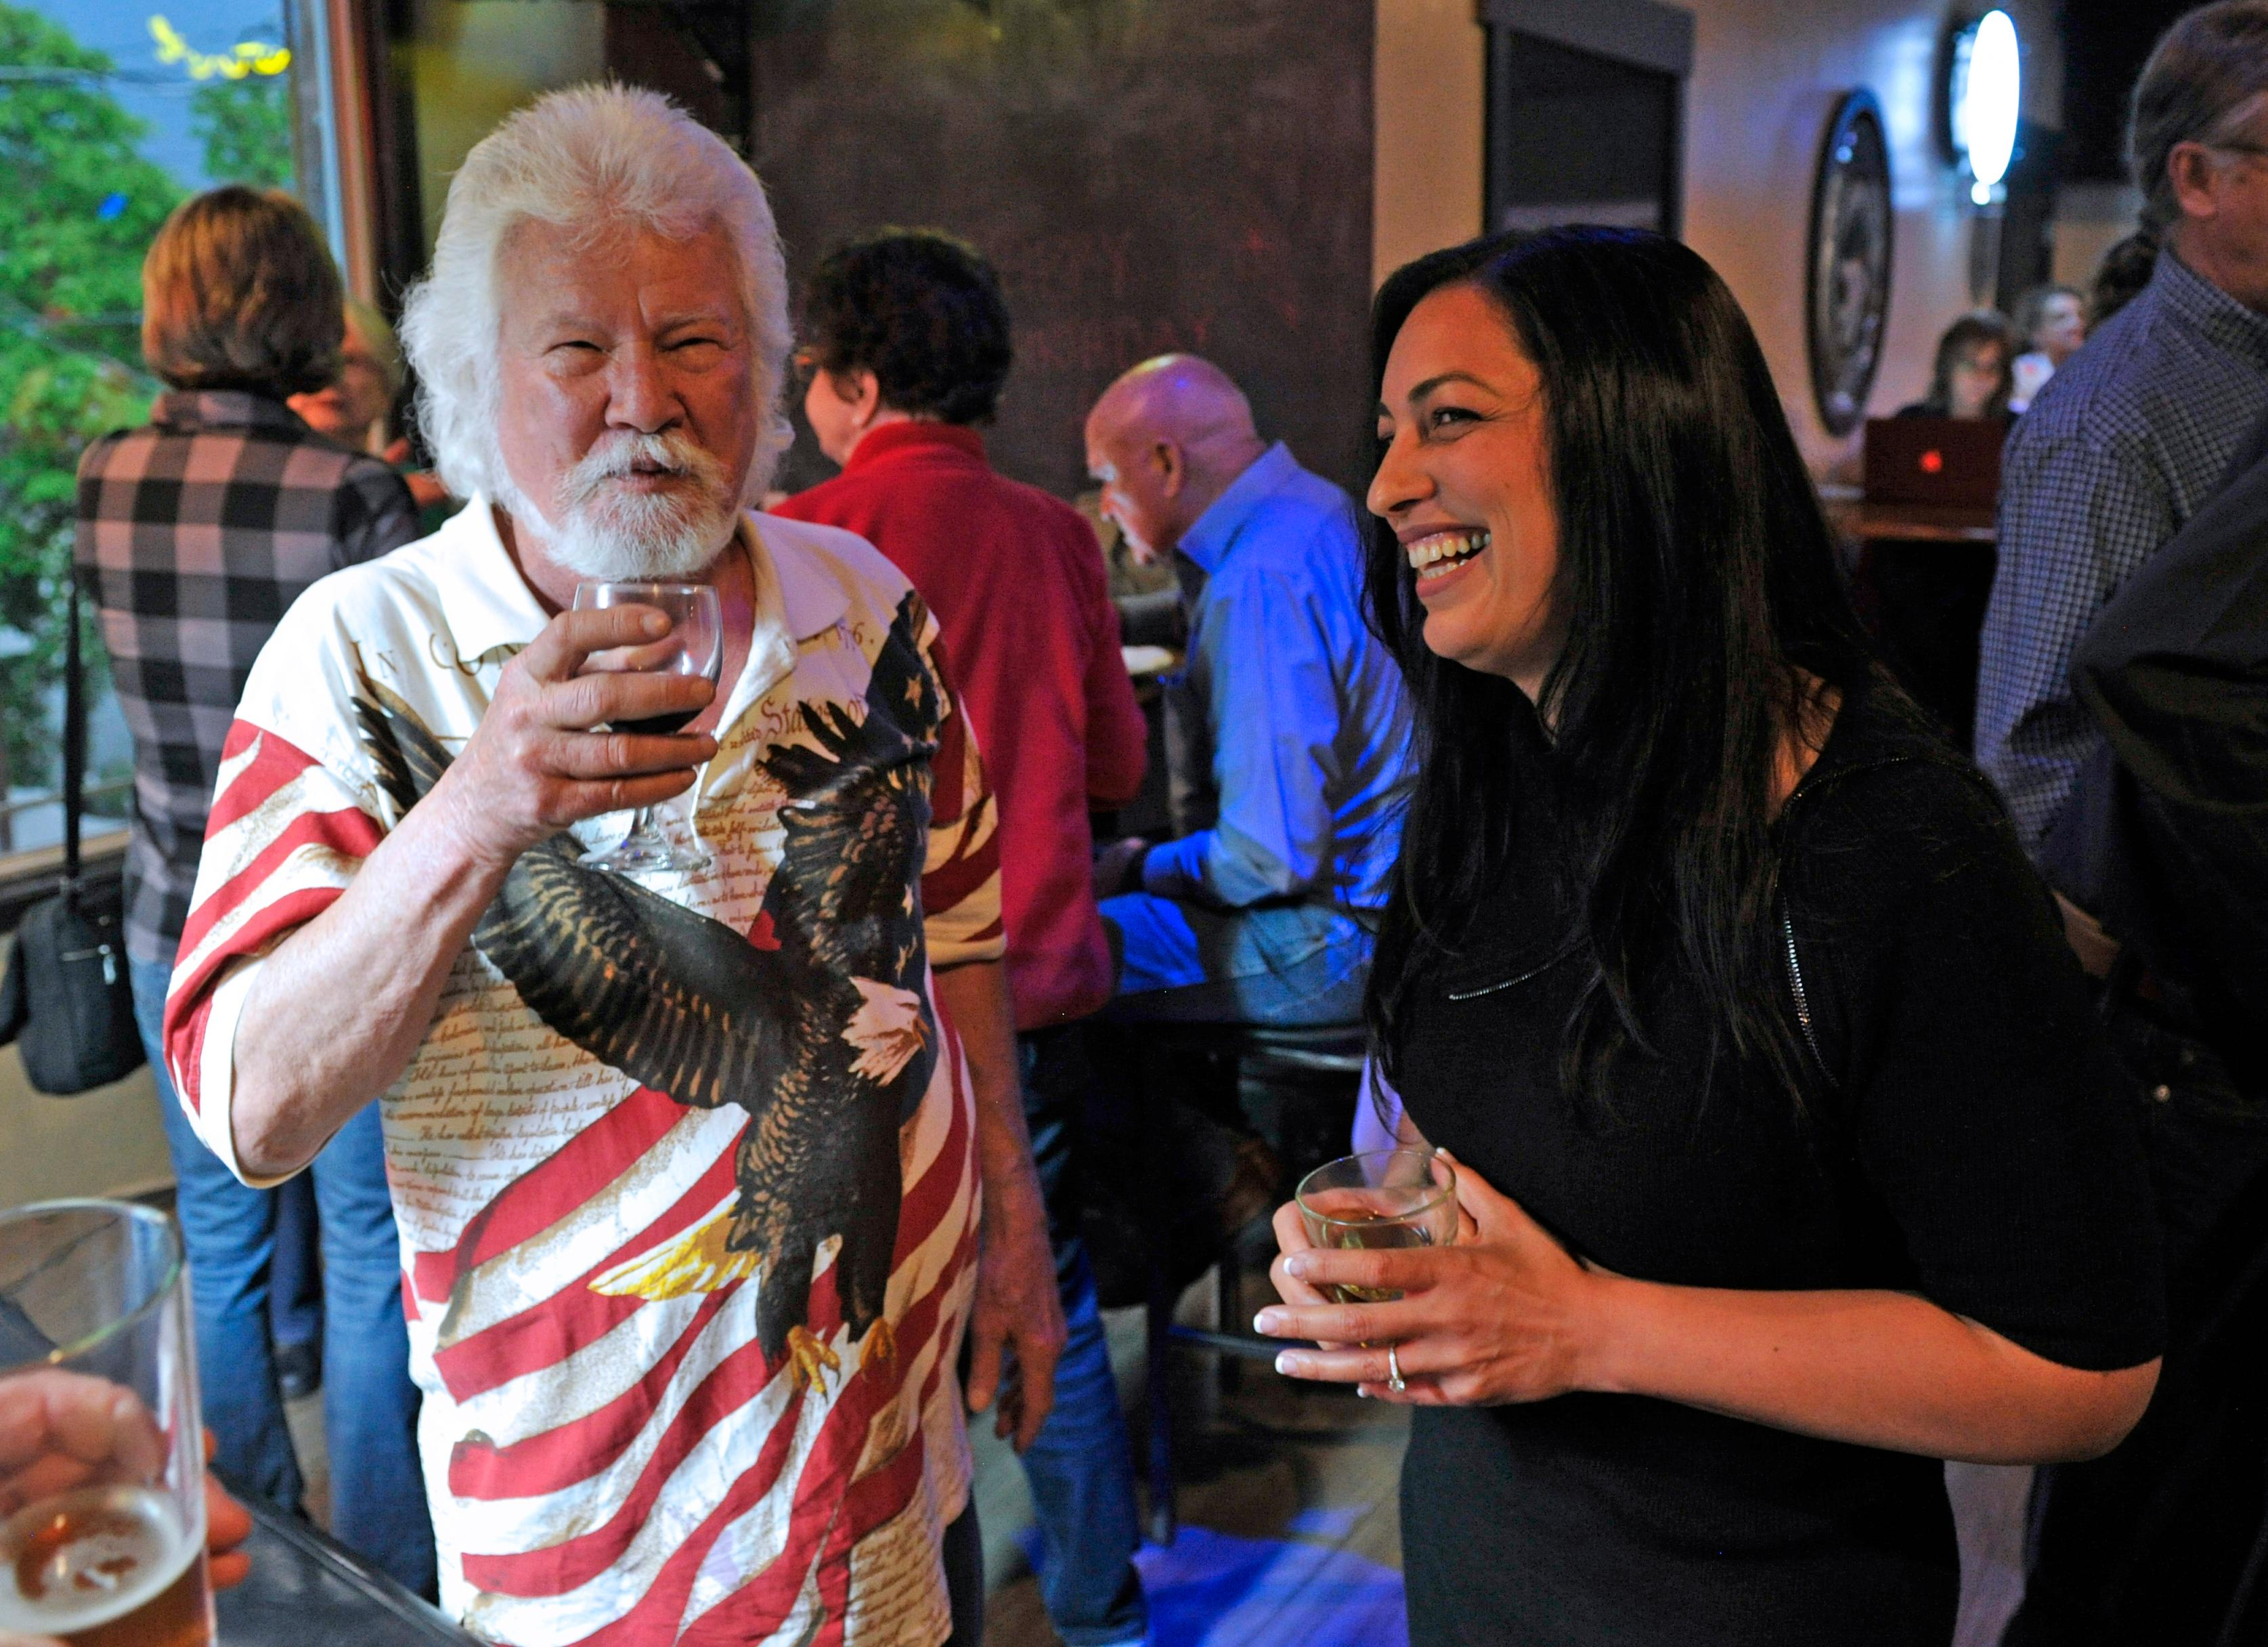 Jamie Lusch /Mail TribuneOregon Senate candidate Jessica Gomez talks with JD Jones of Central Point while waiting for results at Grape Street Bar & Grill Medford on Tuesday.